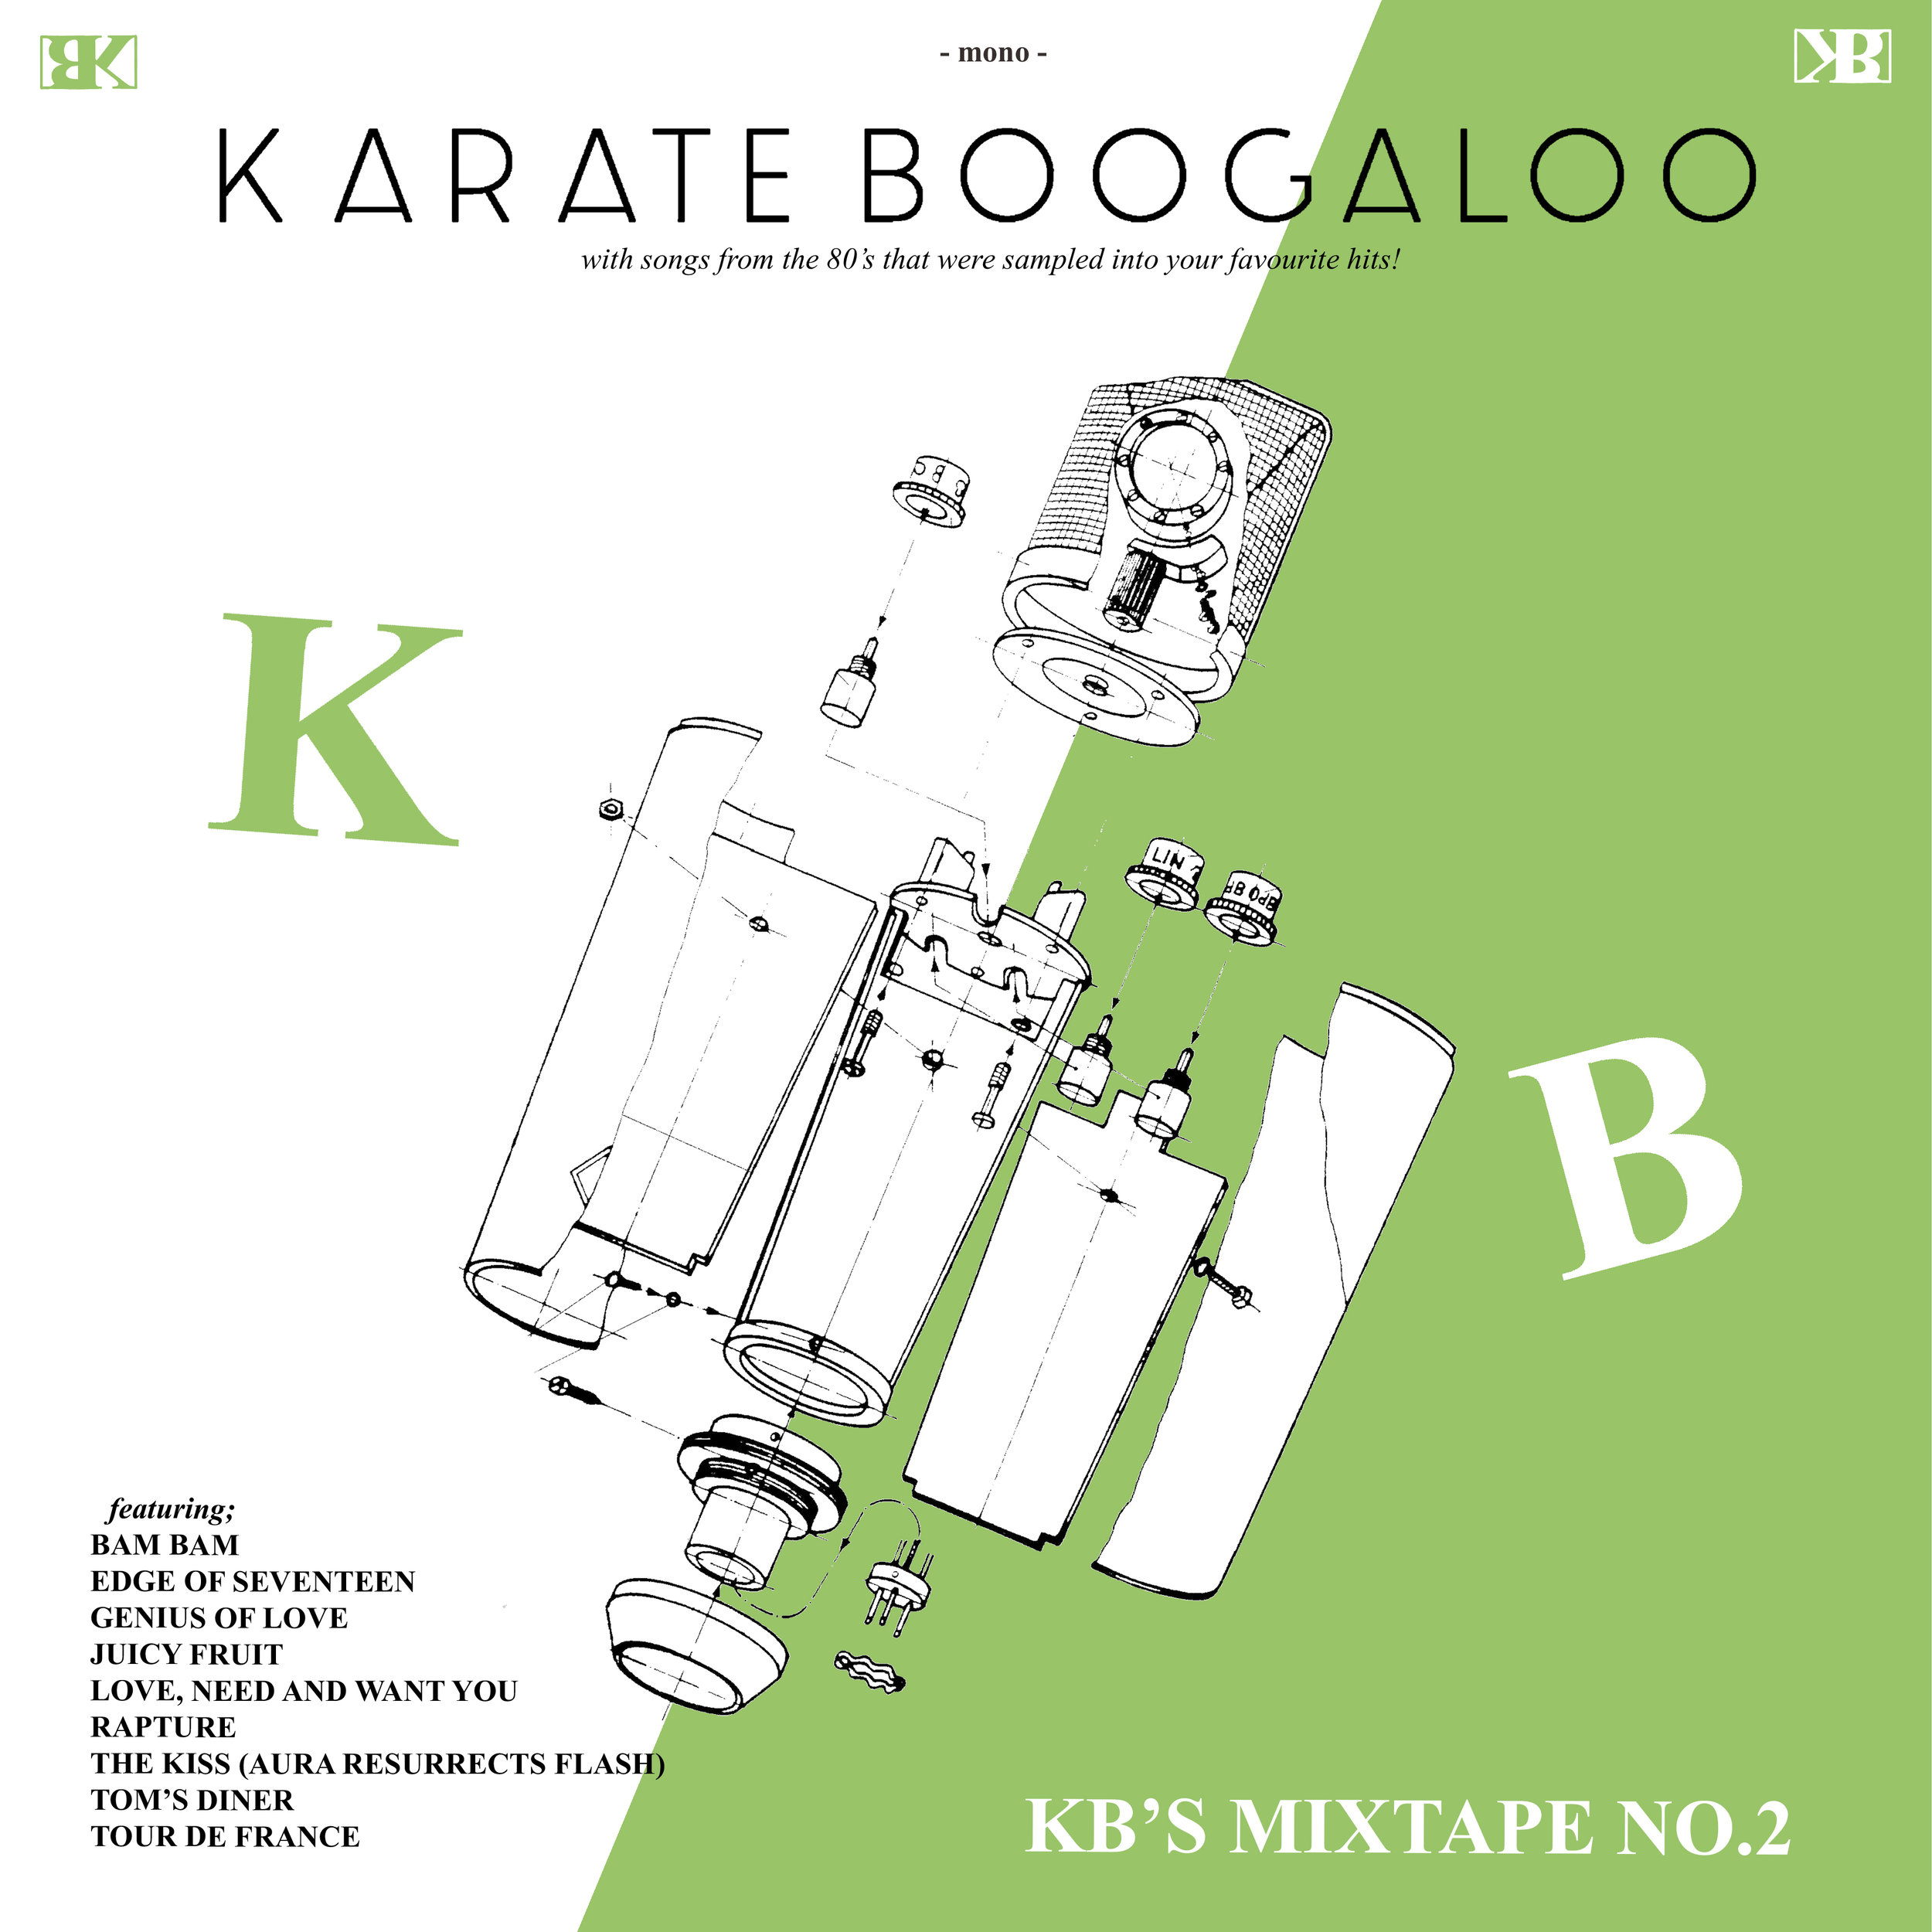 10 - Karate Boogaloo - KB's Mixtape No. 2 Square.jpg